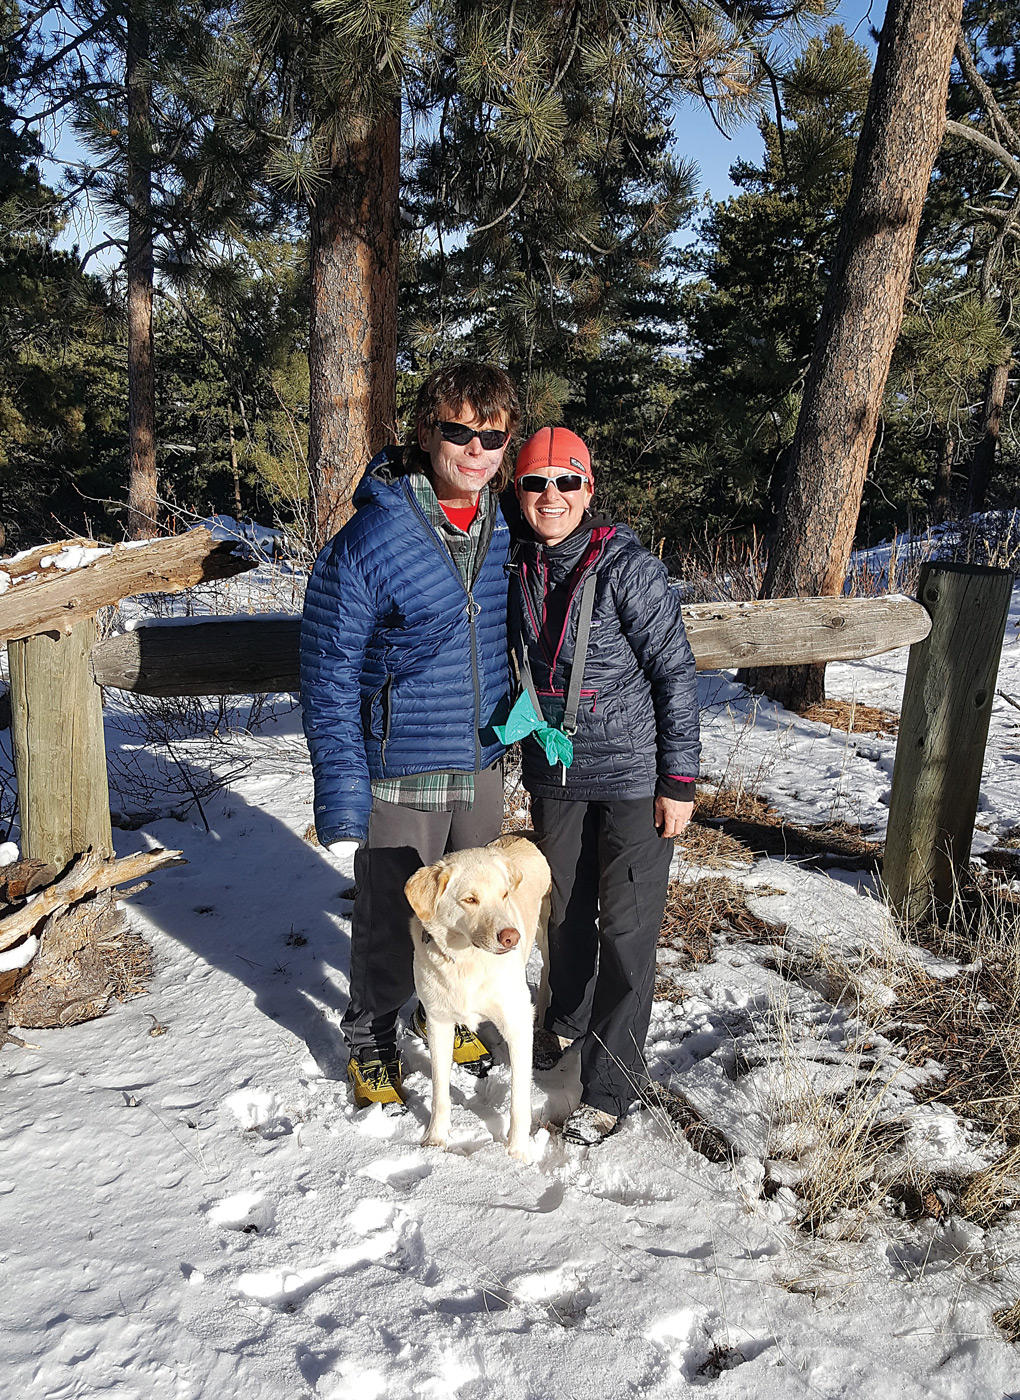 Dave and Amanda Repsher with their faithful companion, Turq. Dave has made an extraordinary recovery since sustaining near-fatal injuries in the 2015 crash of a Flight For Life helicopter. The Repshers now hope their story can inspire positive action on issues they're passionate about, including helicopter safety. Amanda Repsher Photo